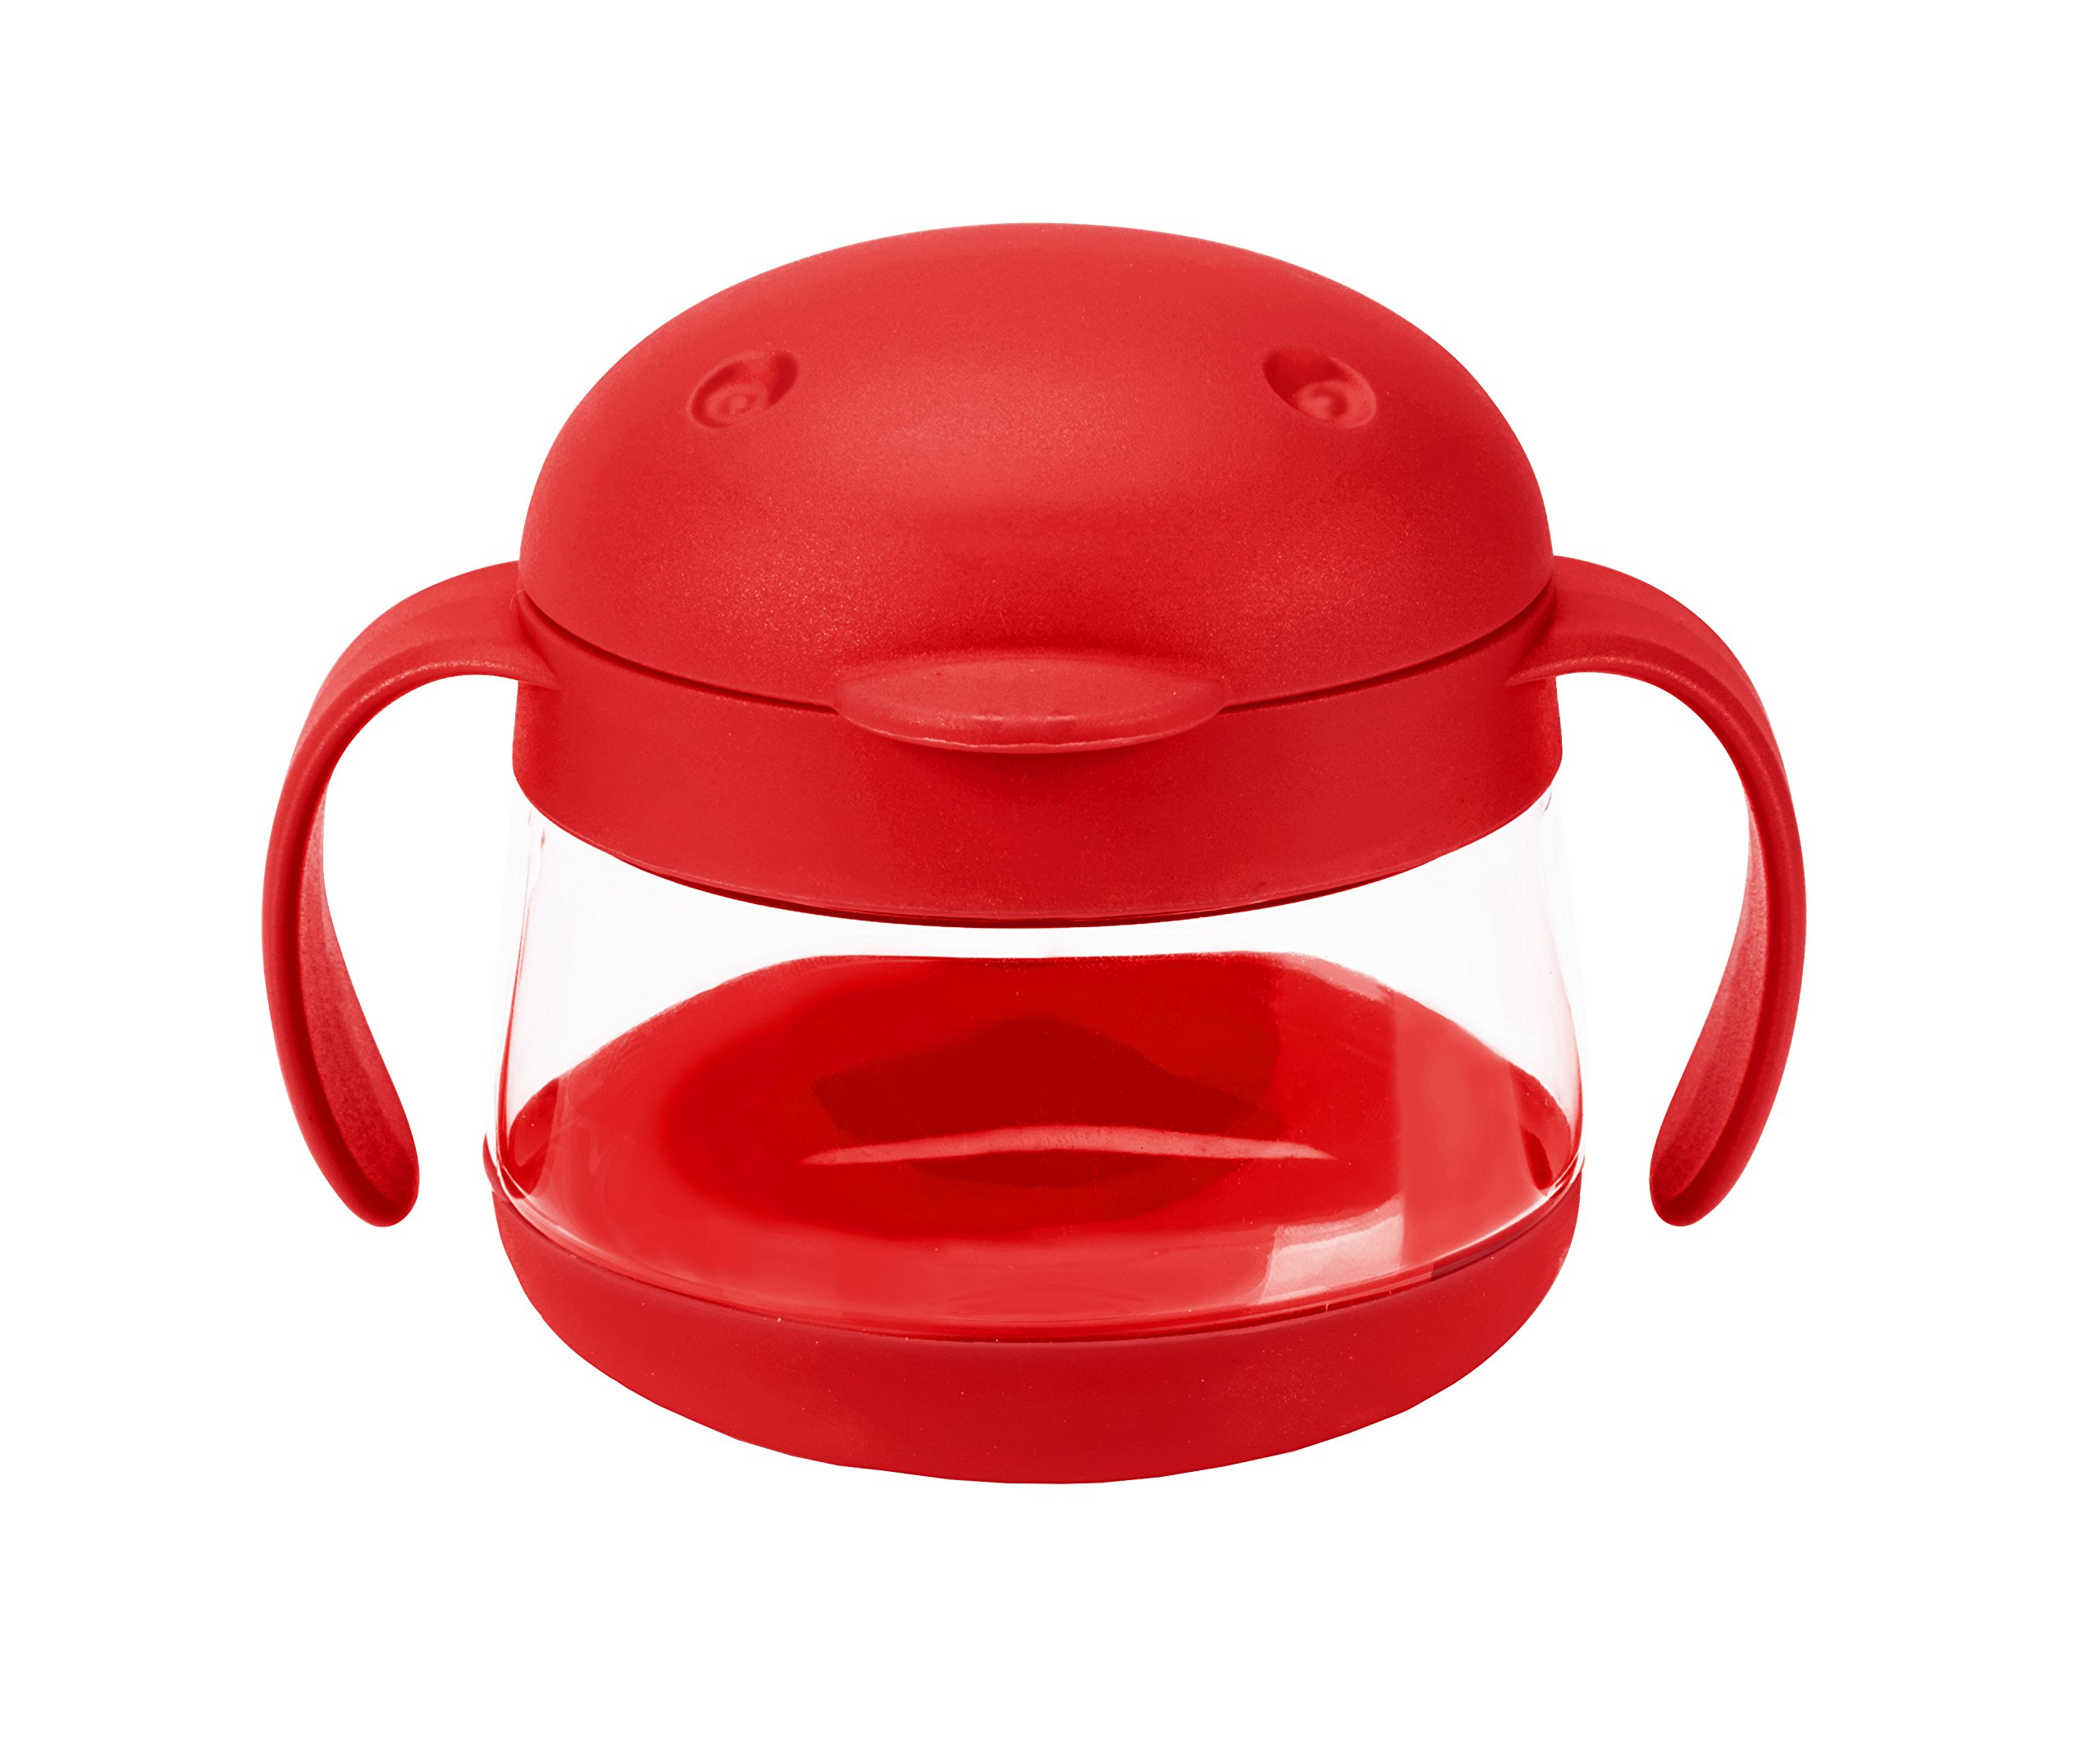 Ubbi Tweat Snack Container, Red, 9 Ounce